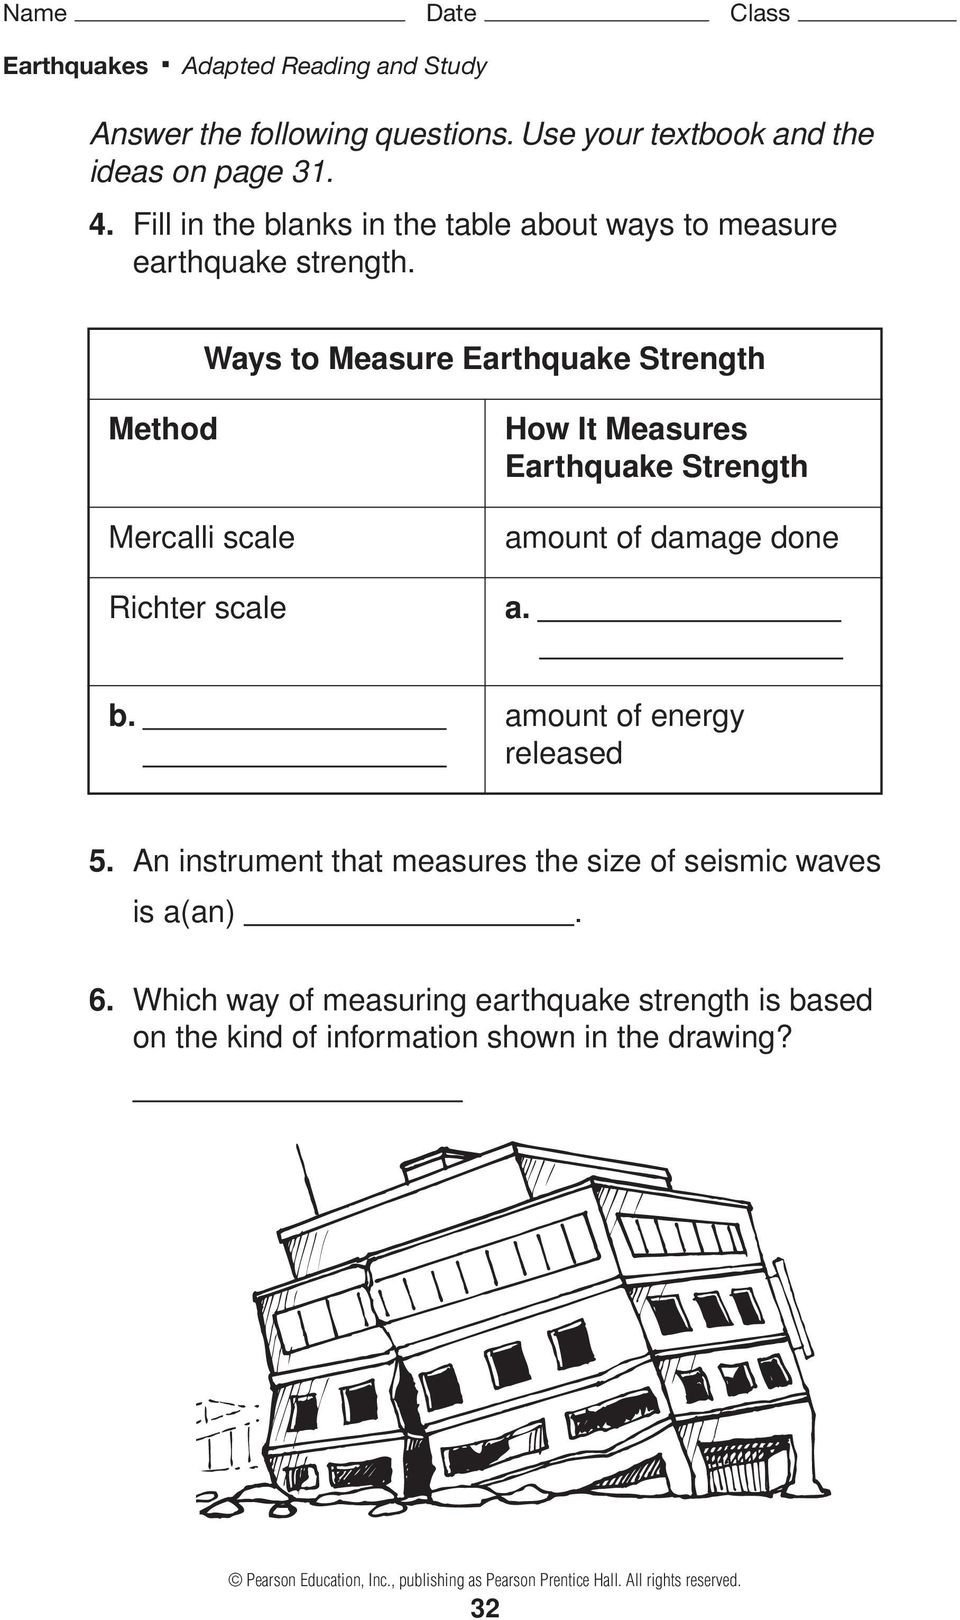 Earthquake Worksheets Middle School Earthquakes and Seismic Waves Pages 51 57 Pdf Free Download